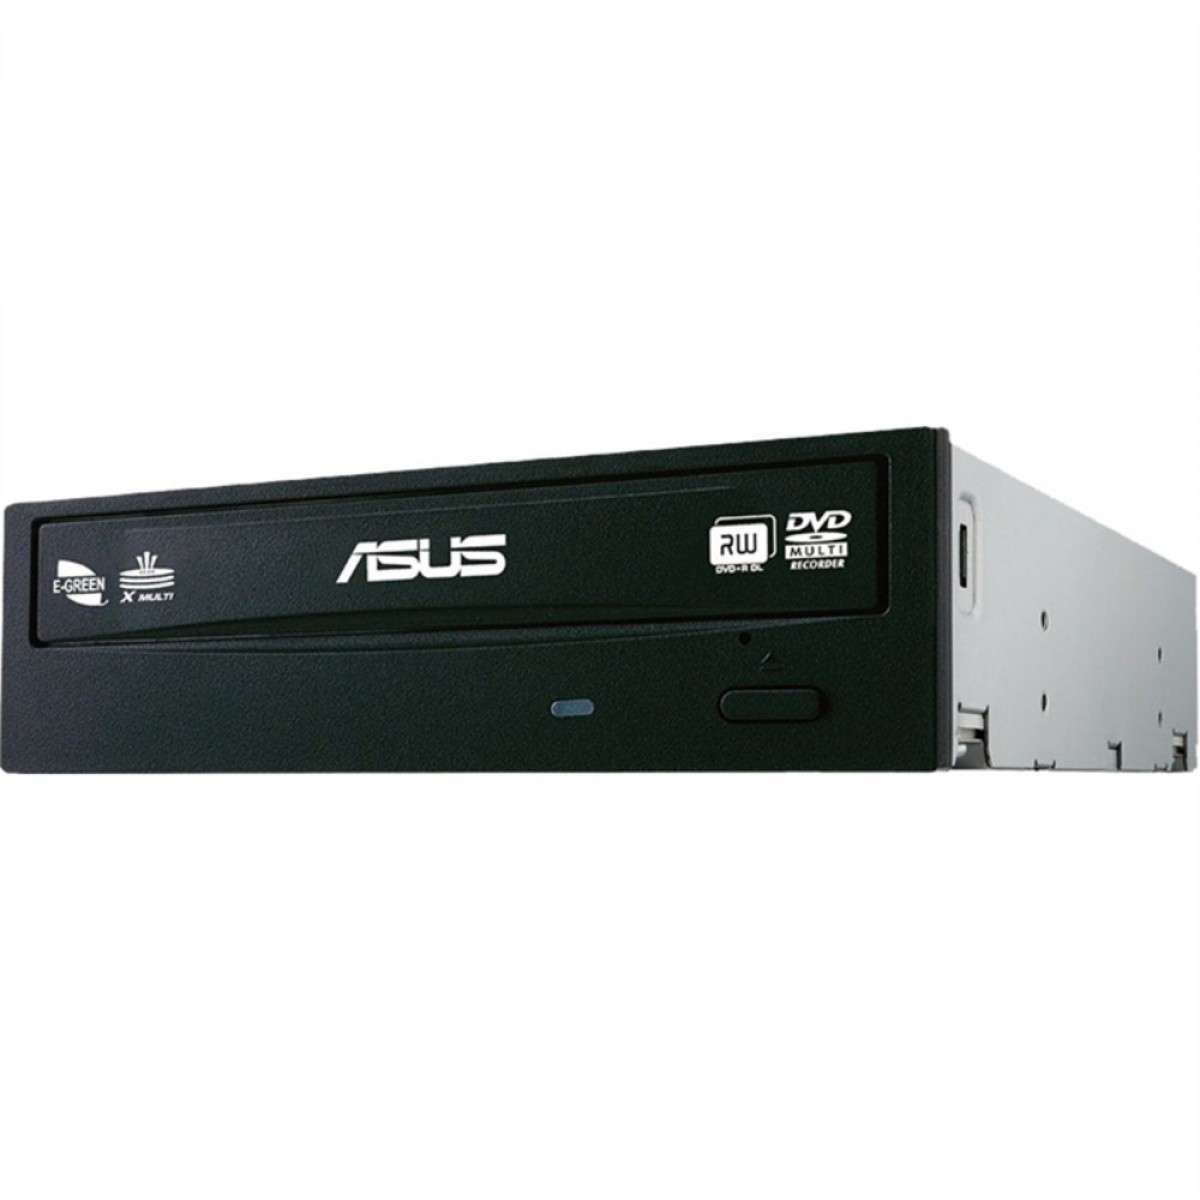 Gravador ASUS DVD 24X Black Interno  - DRW-24F1MT/BLK/B/AS